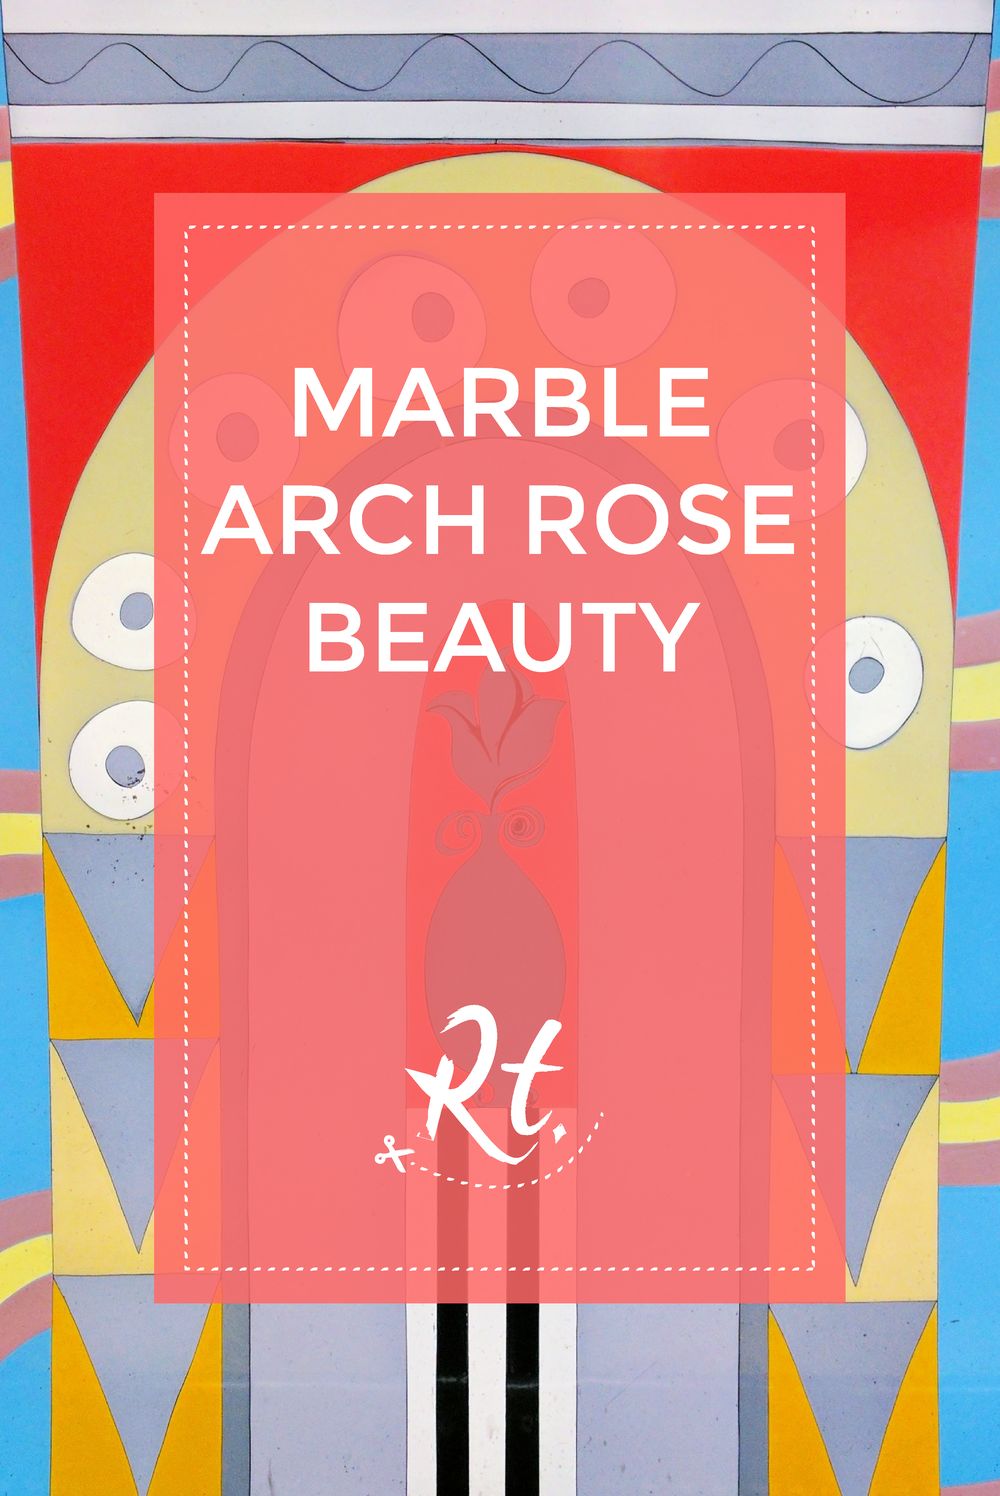 March Arch, tube station, rose